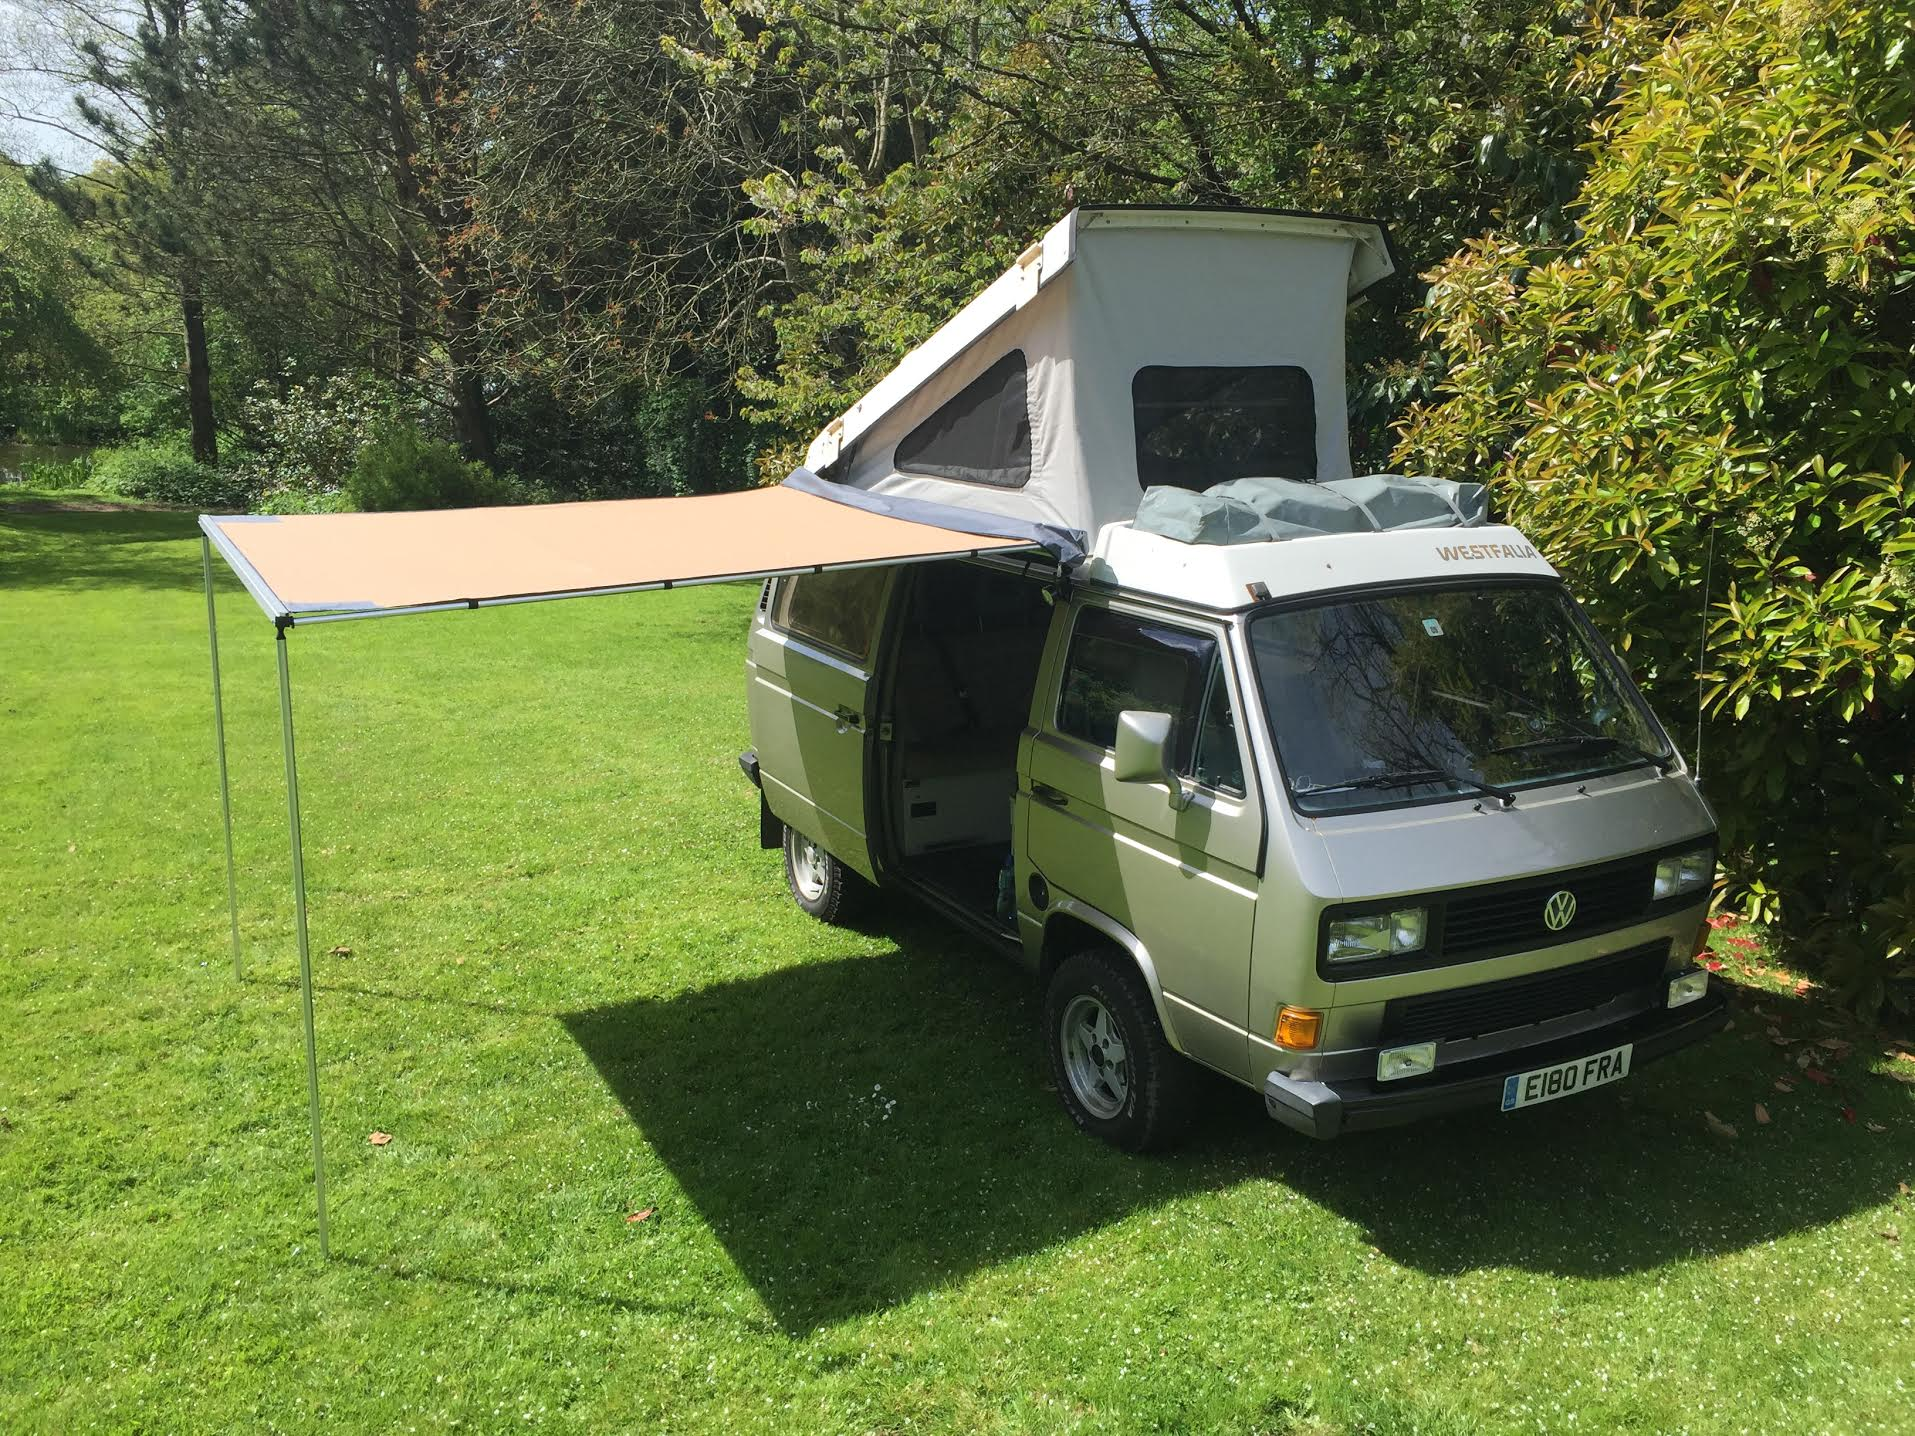 Vw T25 T3 Vanagon Arb 2500mm X 2500mm Awning With Cvc Fitting Kit Now With Led Light Included Campervanculture Com